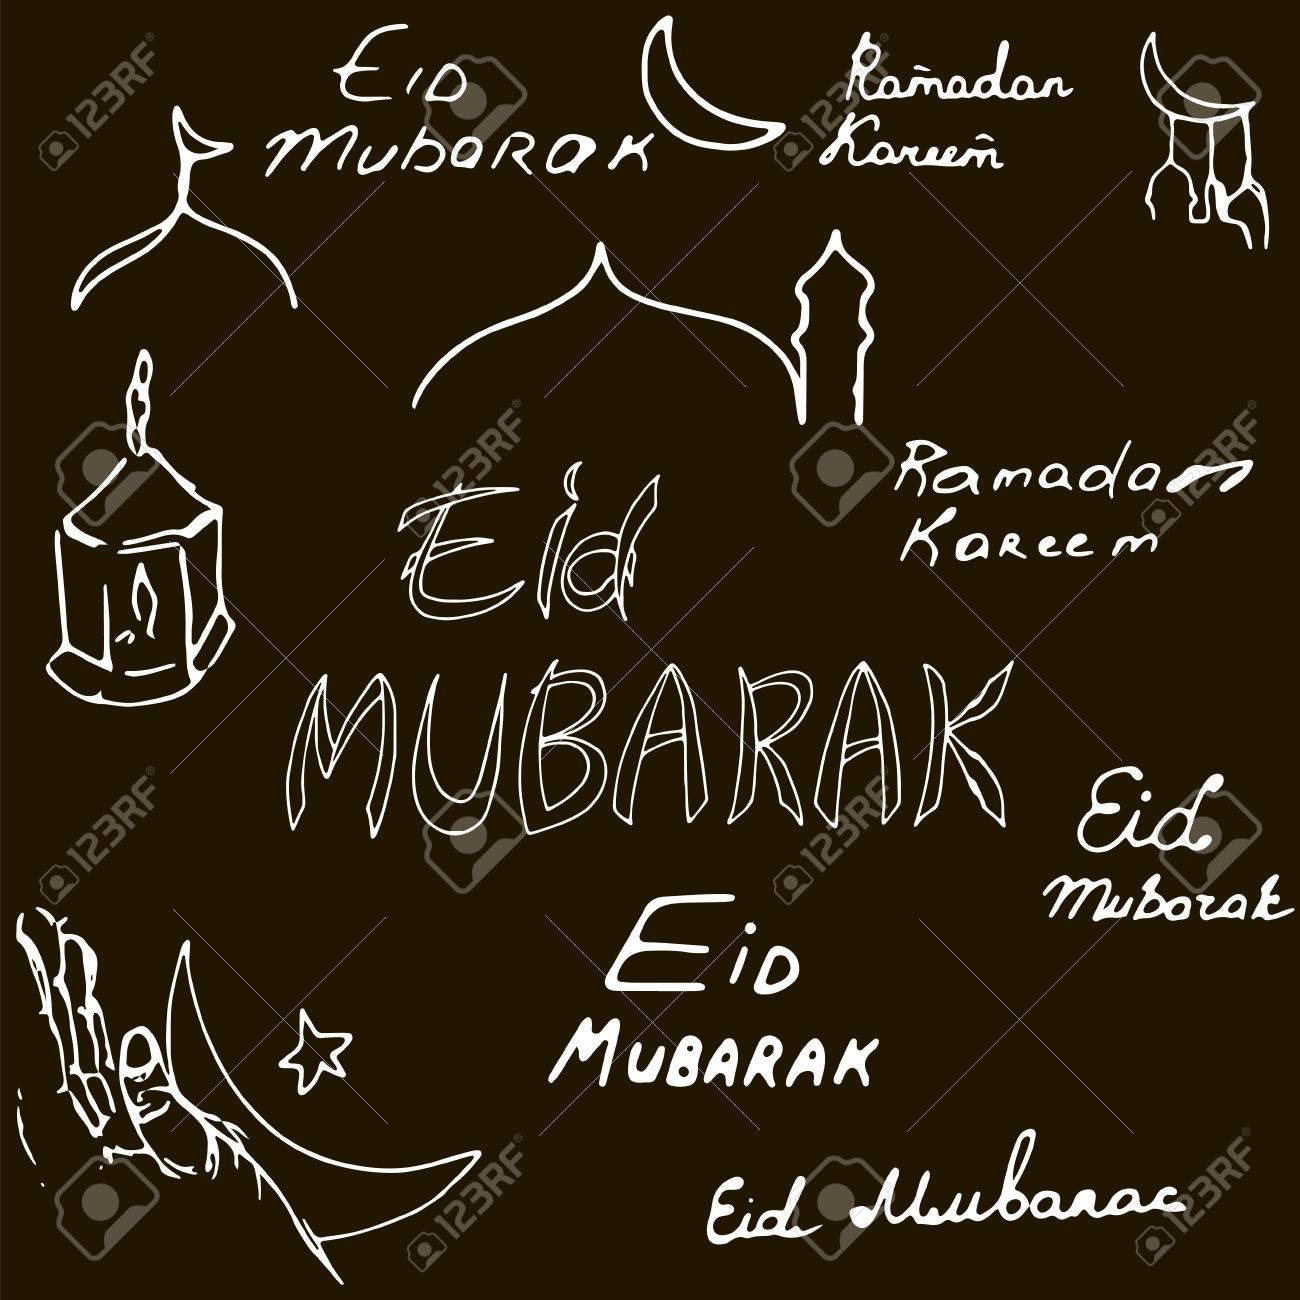 Eid mubarak background with hand letter can be use as sticker eid mubarak background with hand letter can be use as sticker tag design m4hsunfo